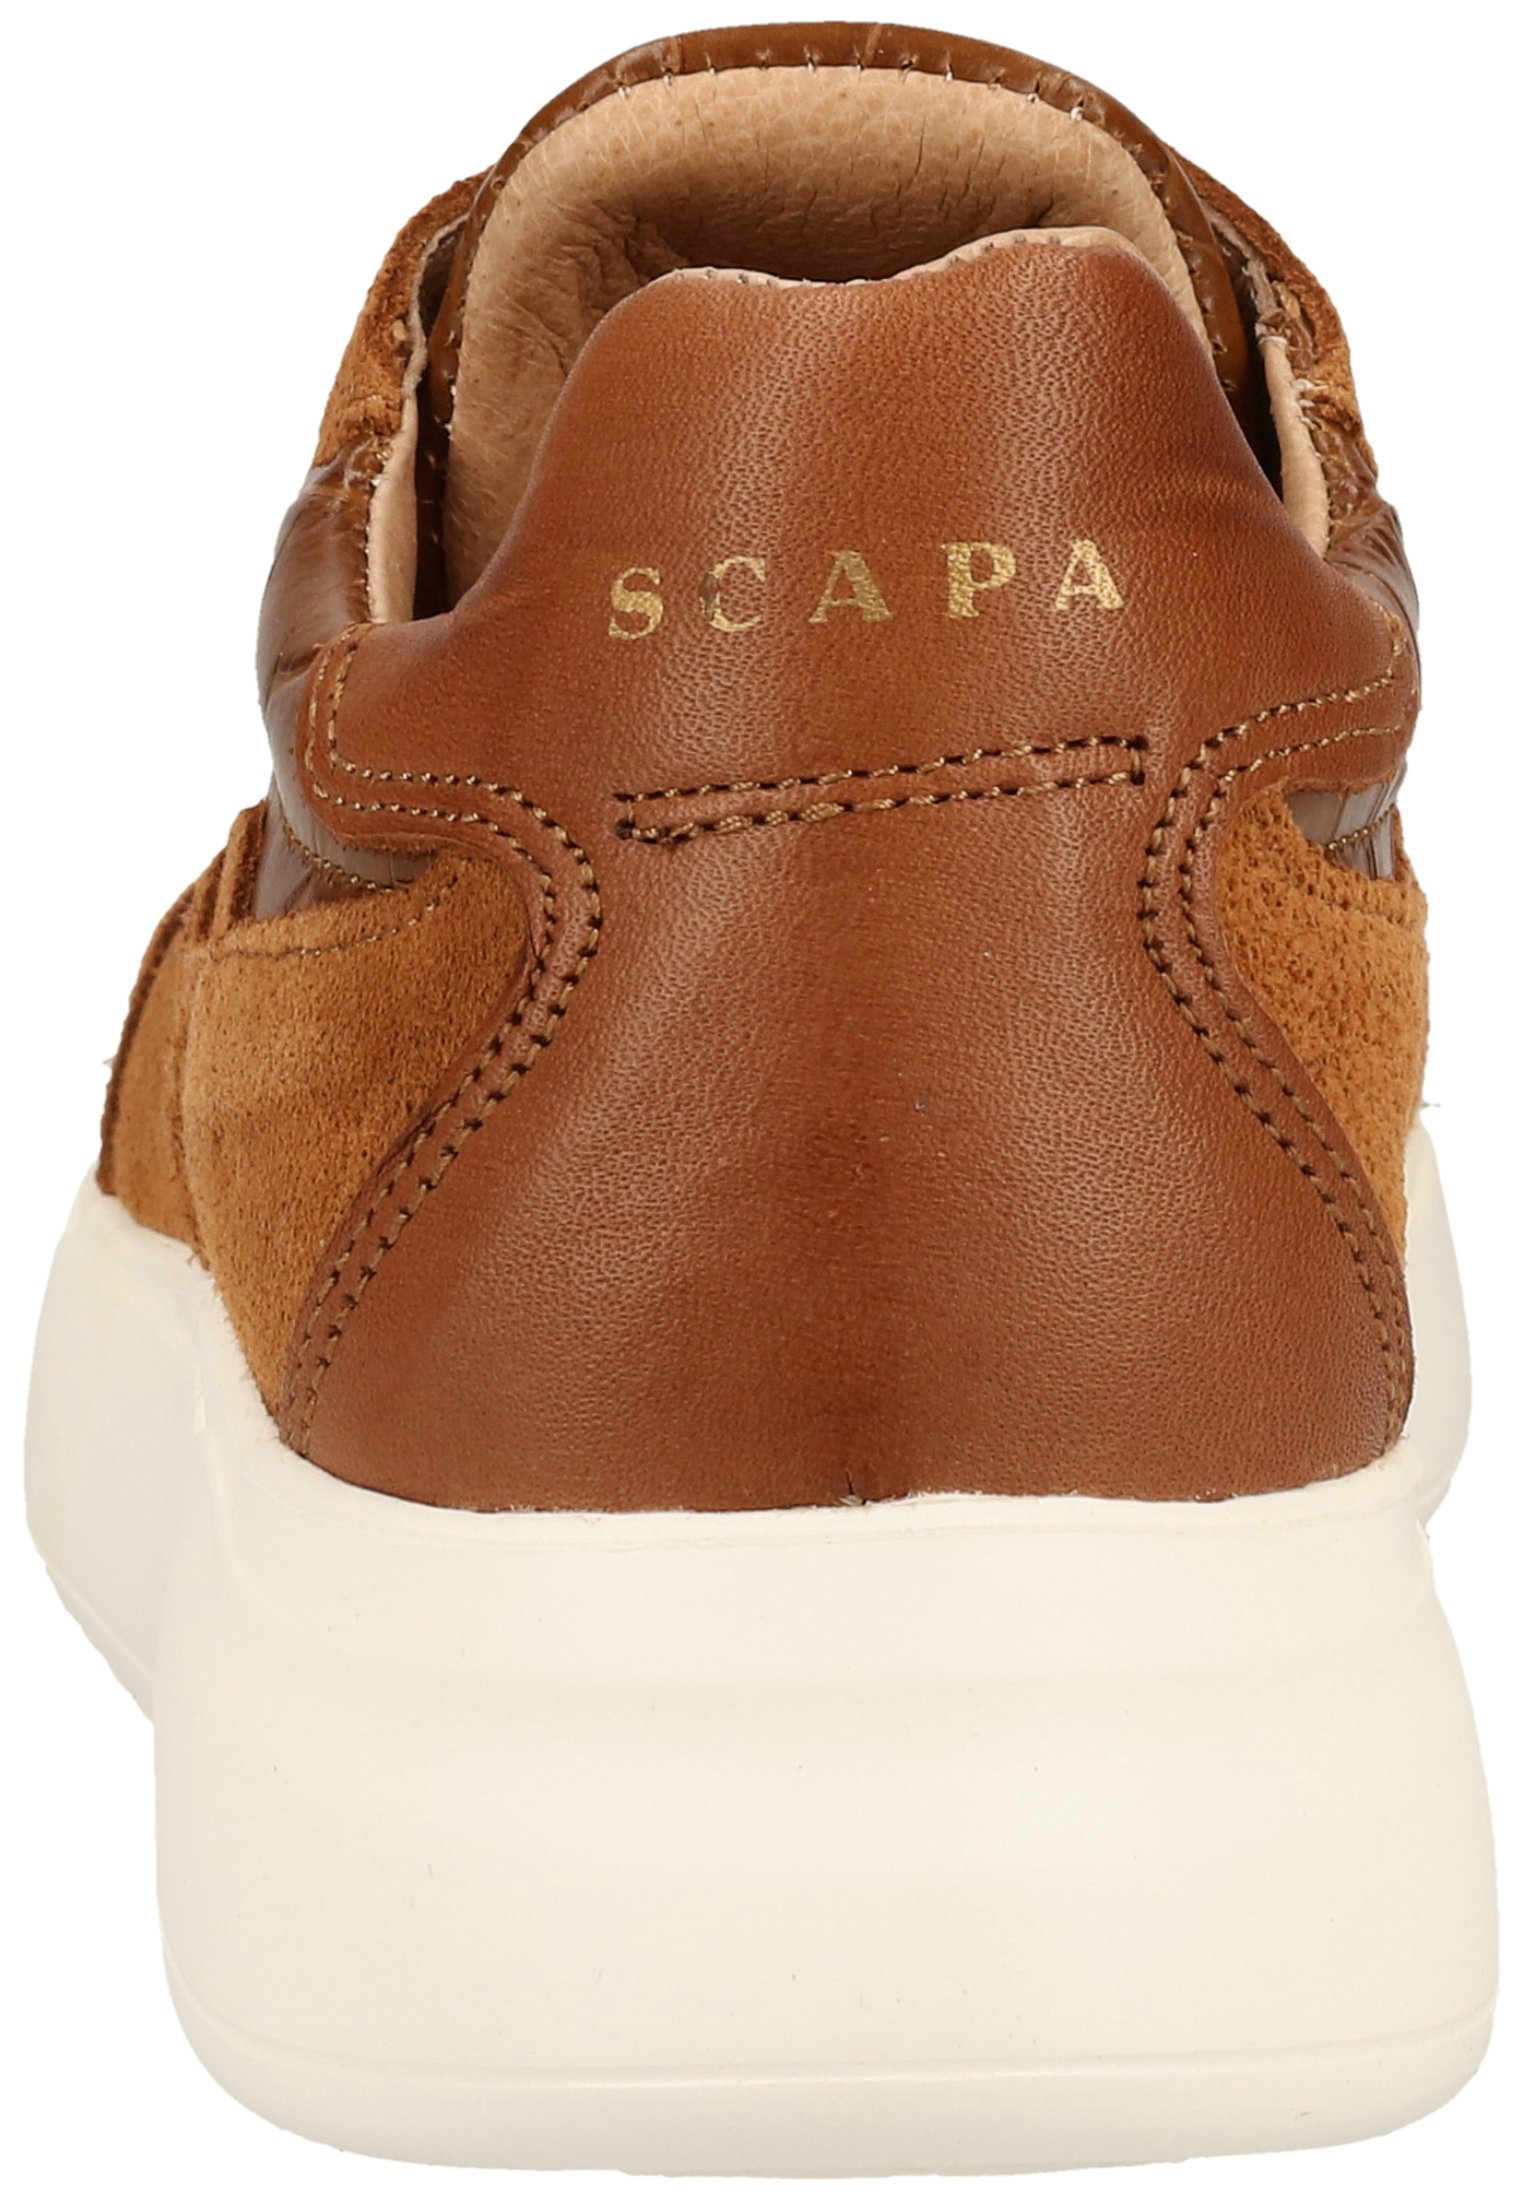 Scapa Sneakers - Cuoio